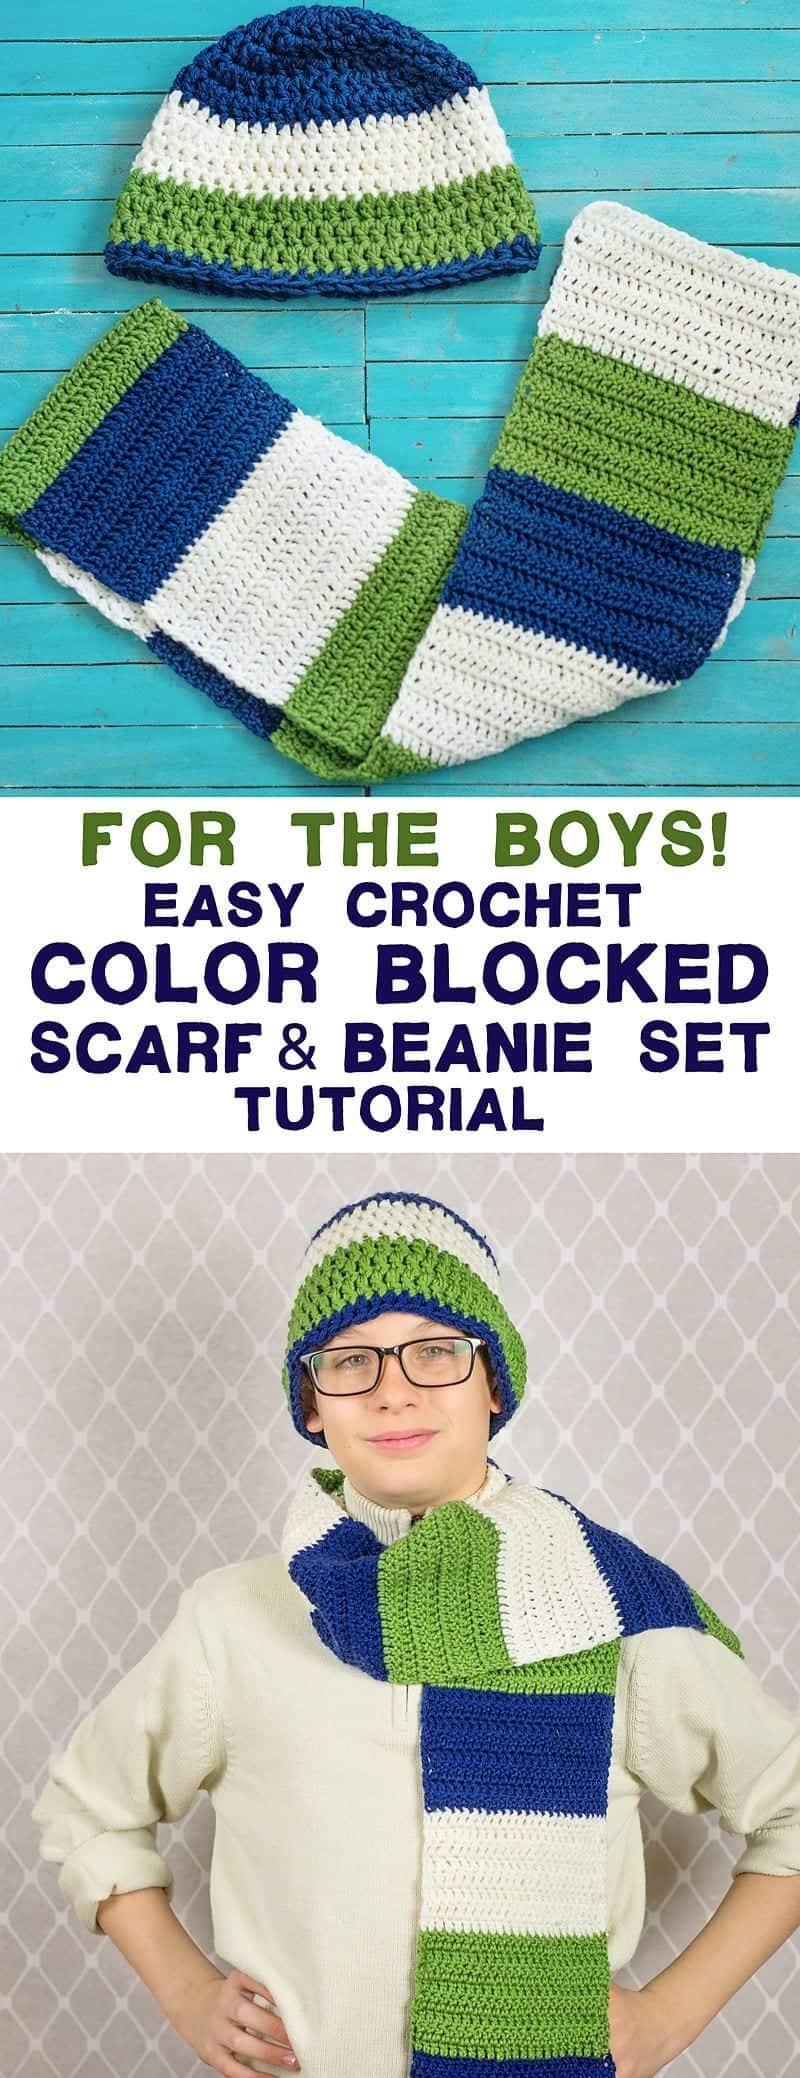 This easy crochet colorblocked scarf and beanie set is a great crochet project for boys. It's also a perfect crochet project for beginnerssince it's all double and single crochet. (free pattern and tutorial)